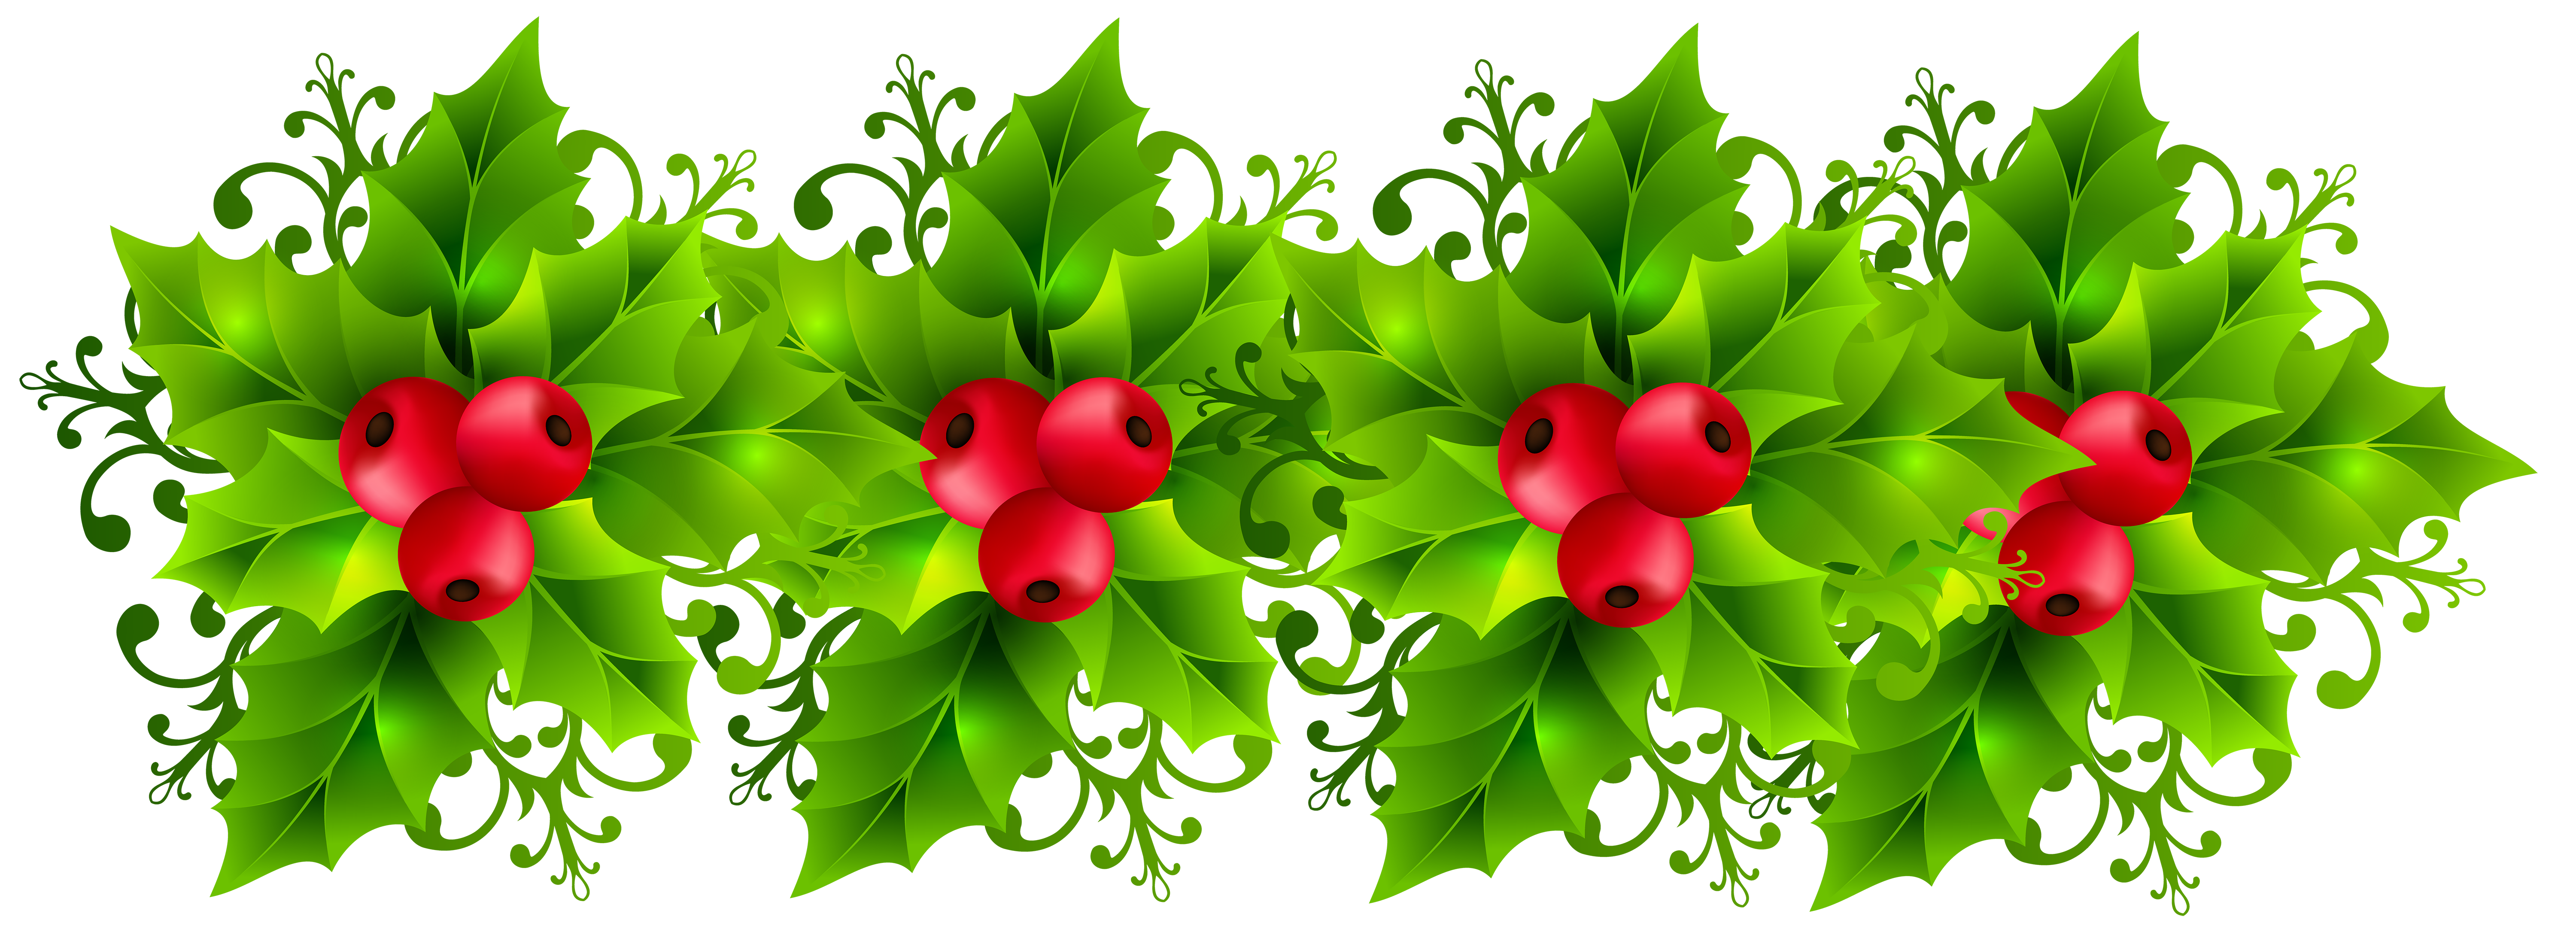 Christmas Holly Garland Transparent PNG Clip Art Image